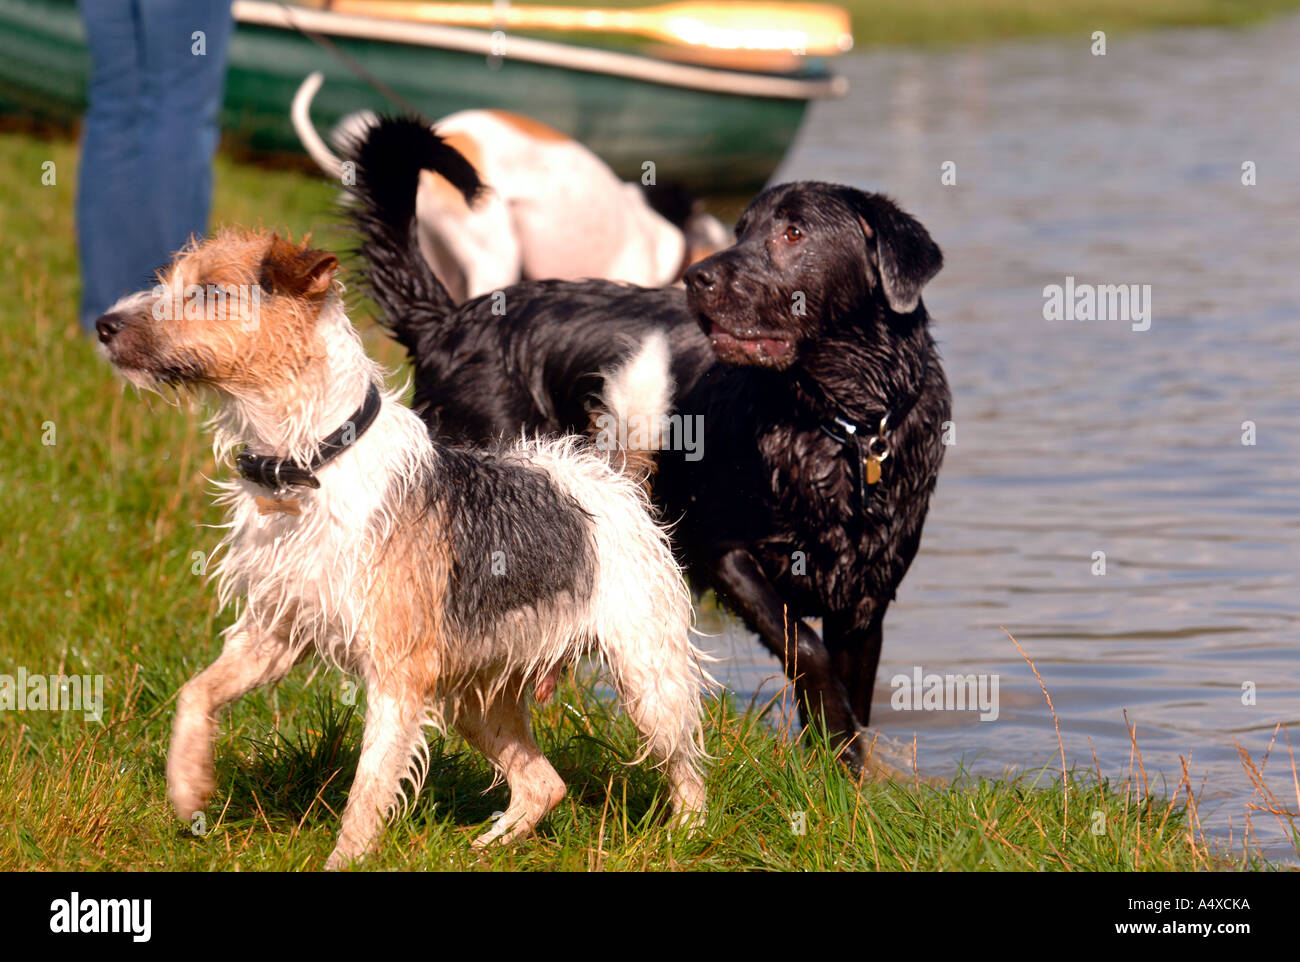 TWO DOGS PLAYING ON THE SHORES OF A LAKE UK - Stock Image